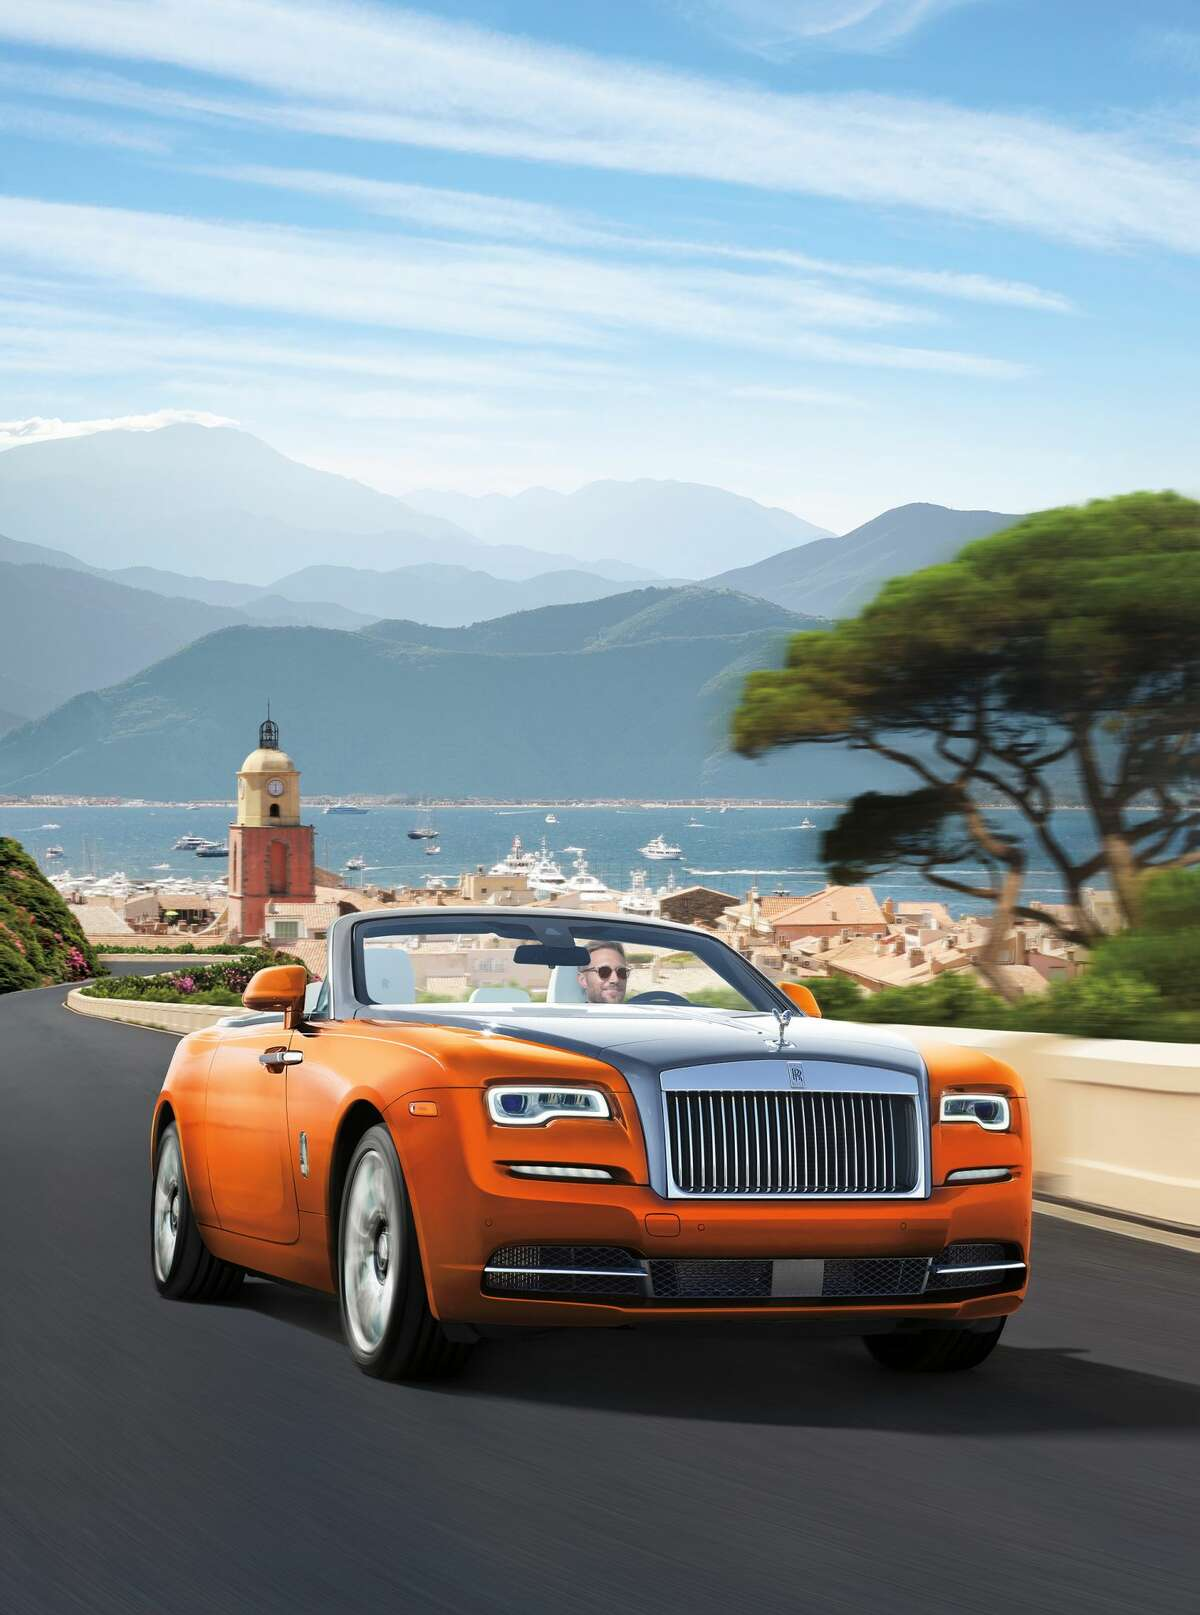 HER CAR: Rolls Royce Dawn photographed on a composited version of Saint Tropez. This V12-engined car boasts a interior of Arctic White leather, accented with dark spice brown and deep orange, with a dashboard and doors paneled in rich Canadel open-pore wood. PRICE TAG: $445,750